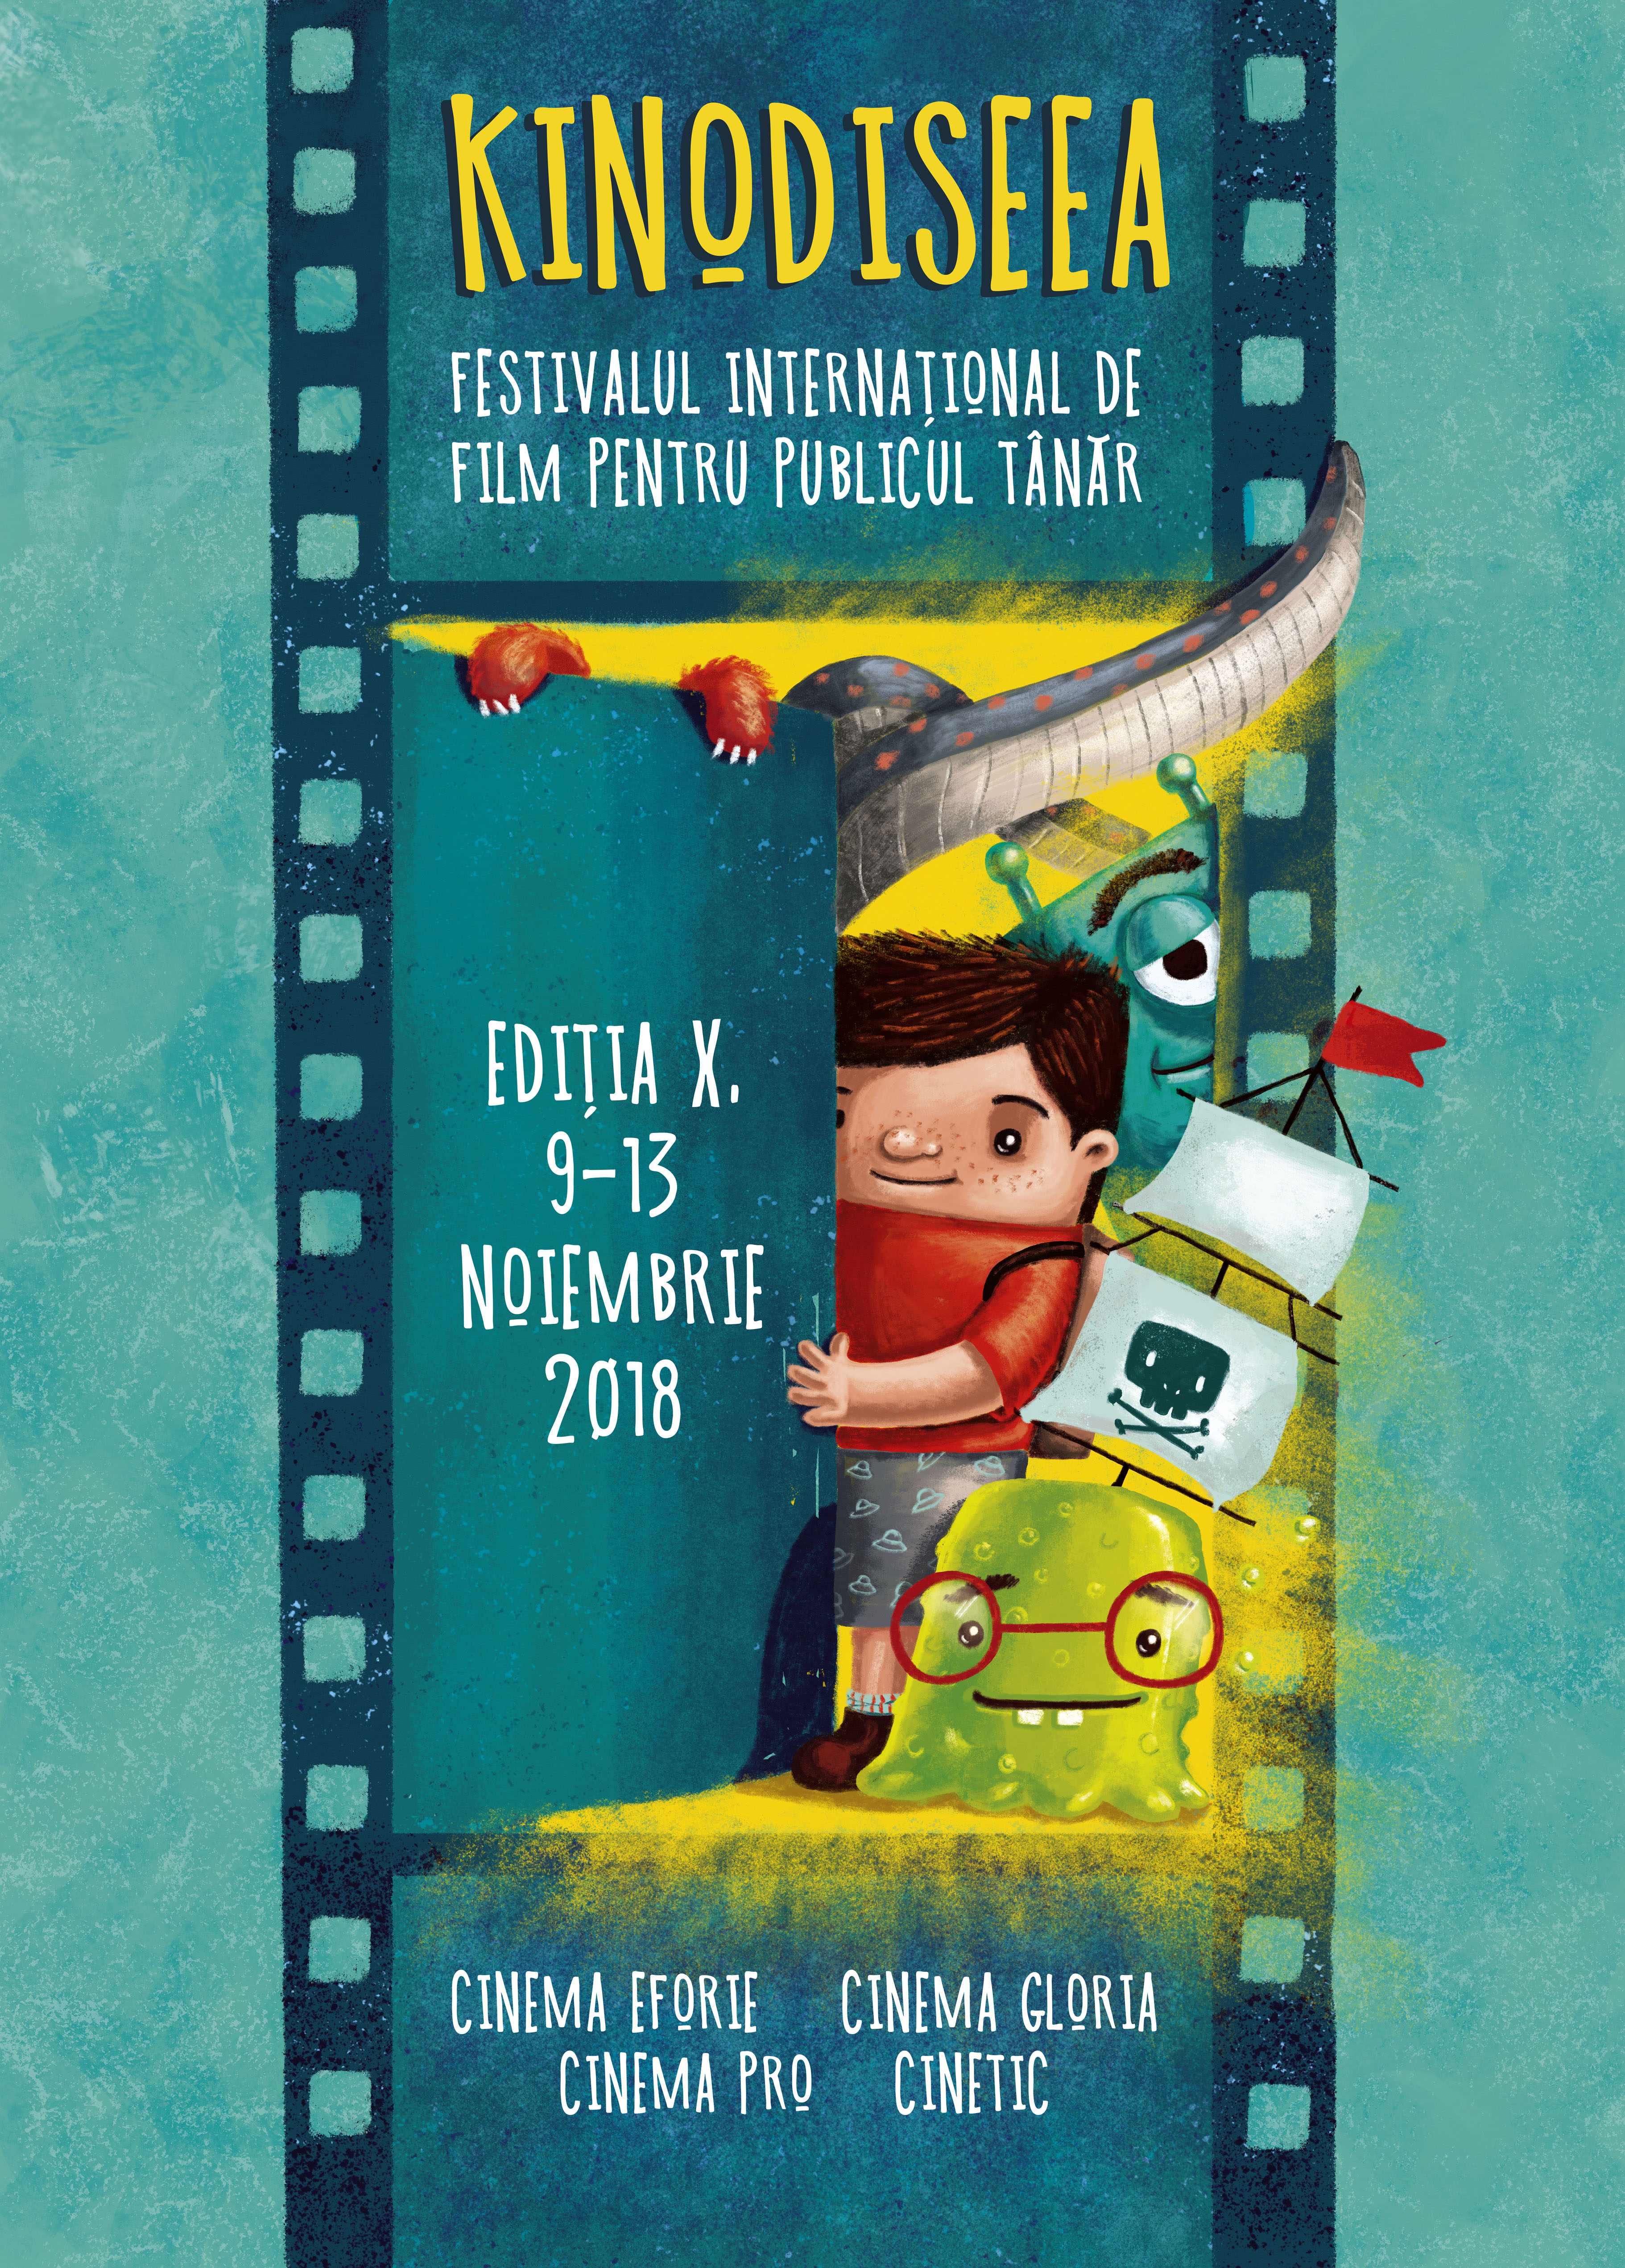 kinodiseea film festival poster illustration andra badea adventure movie children cuteoshenii